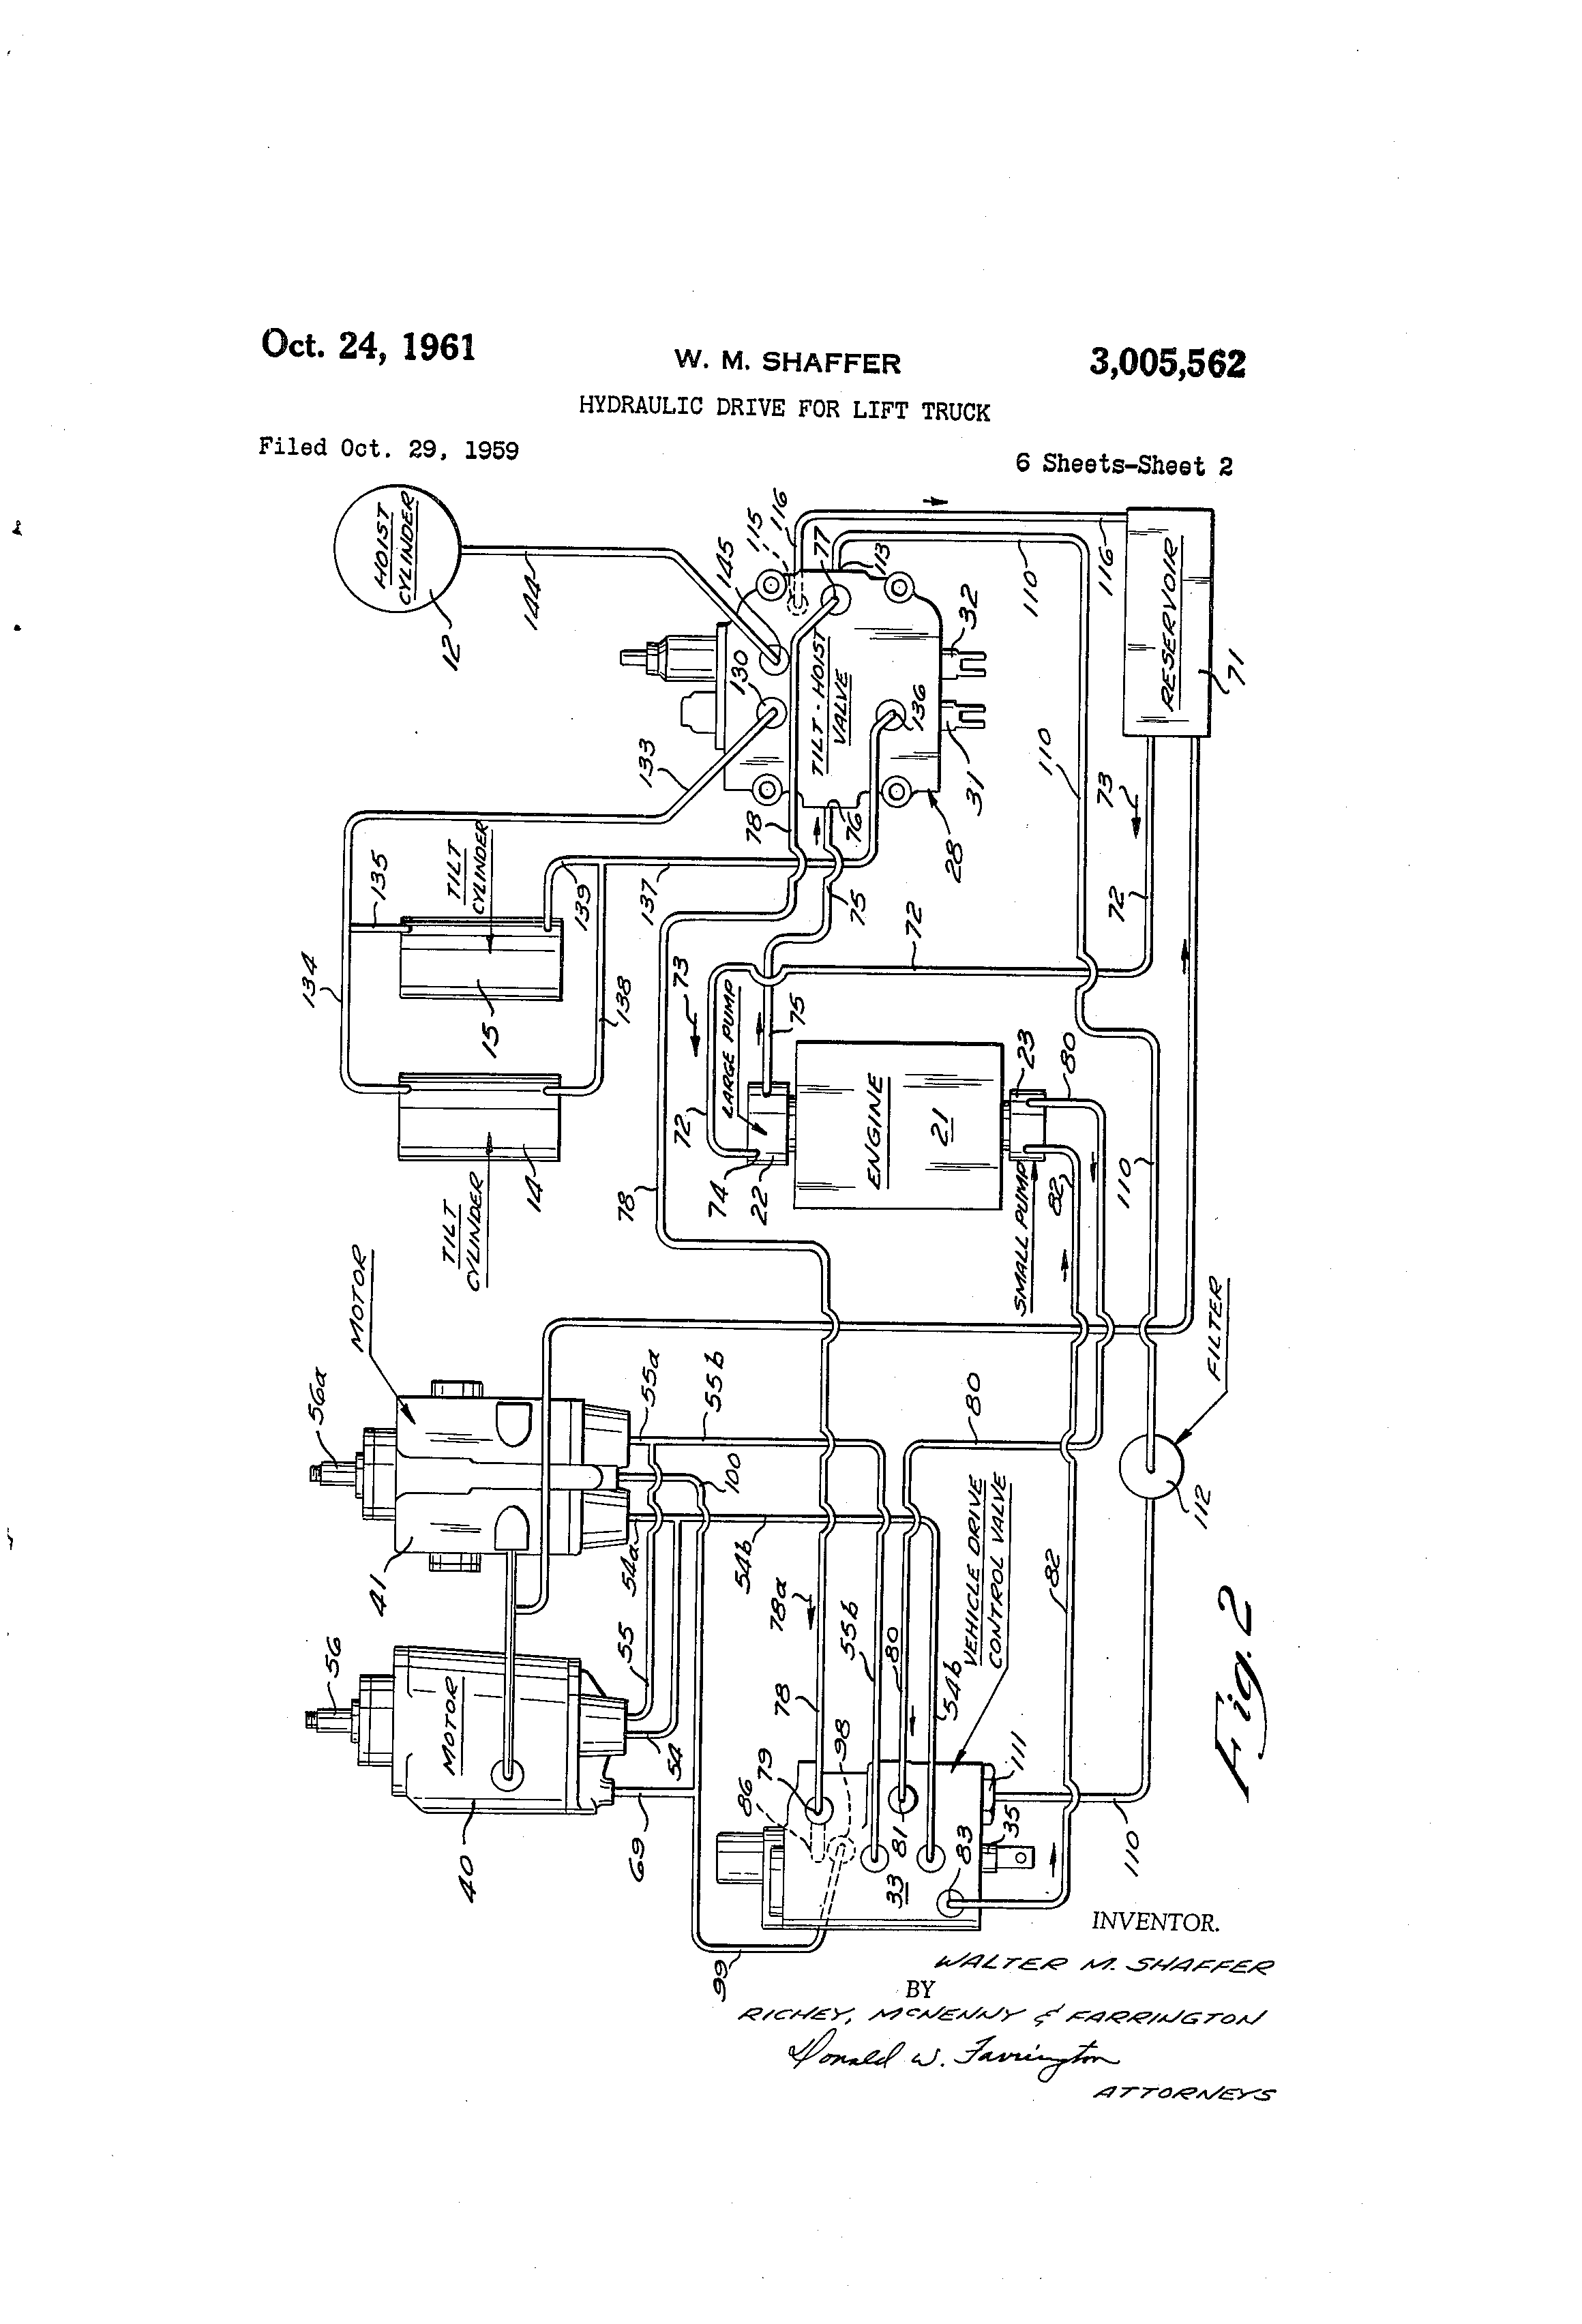 Cat C15 Engine Diagram Lifters Auto Electrical Wiring Diagram